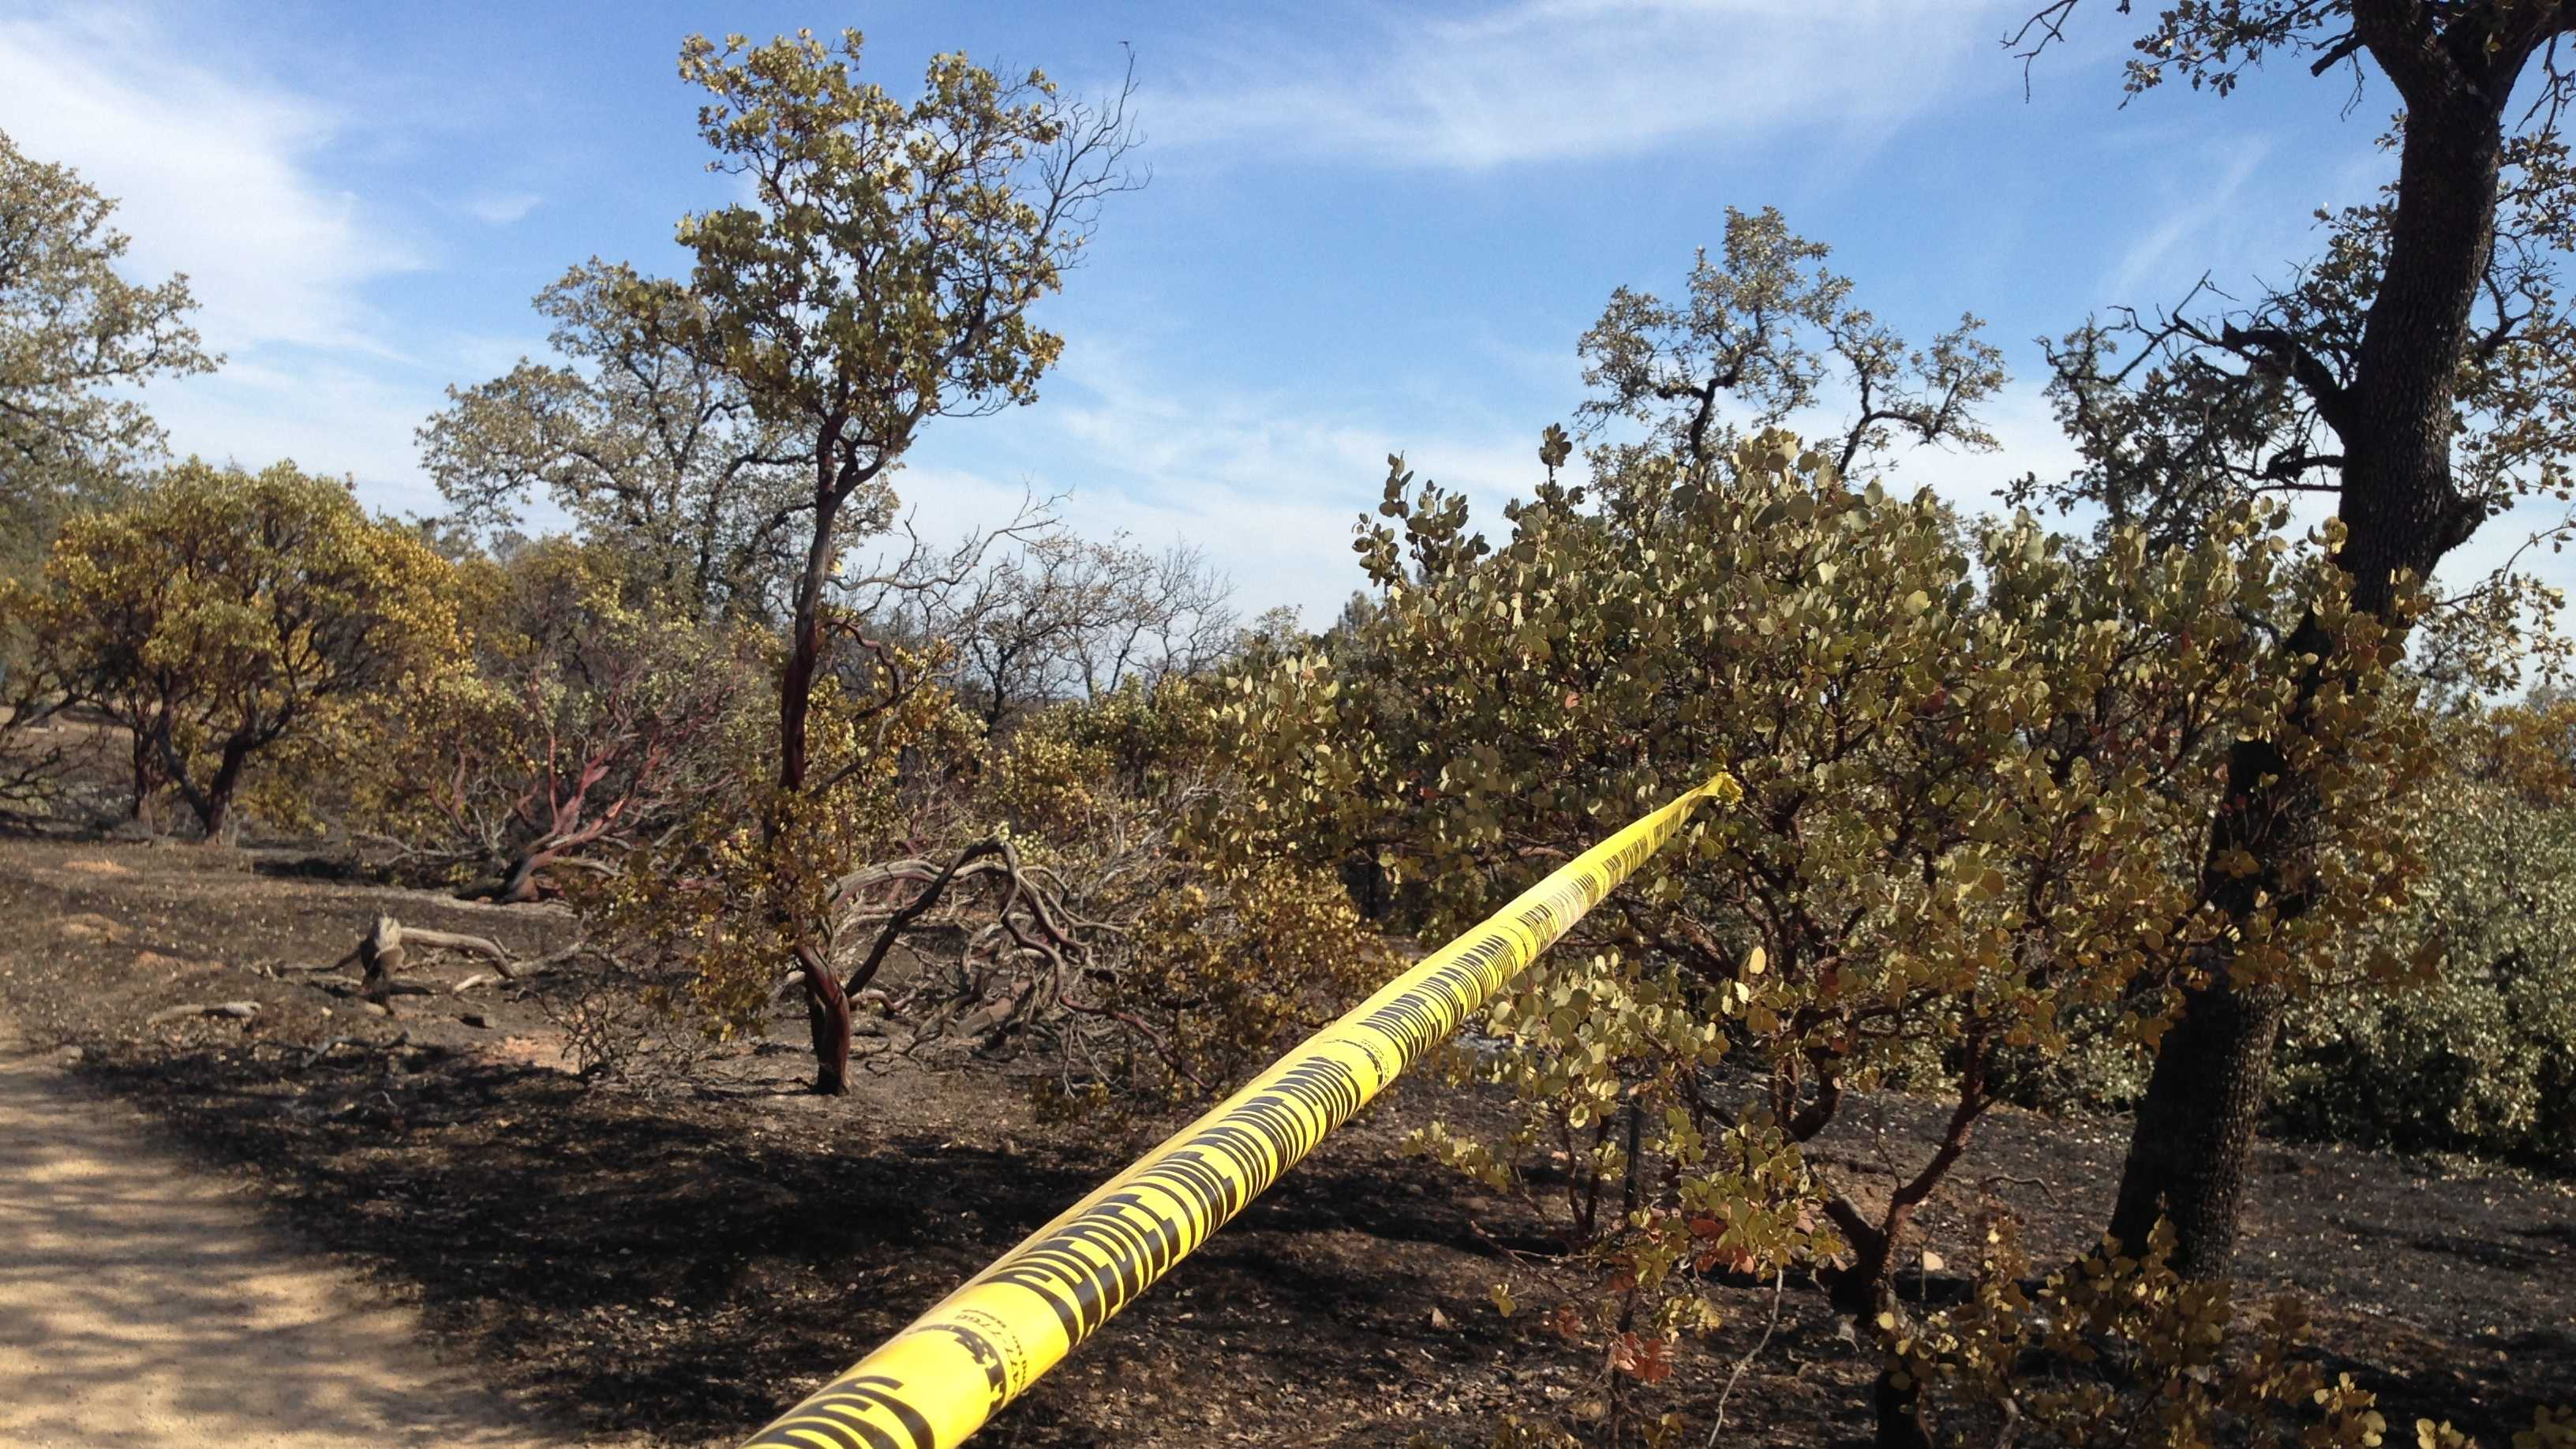 Crime tape marks the spot where a man's burned body was discovered in Shasta County.